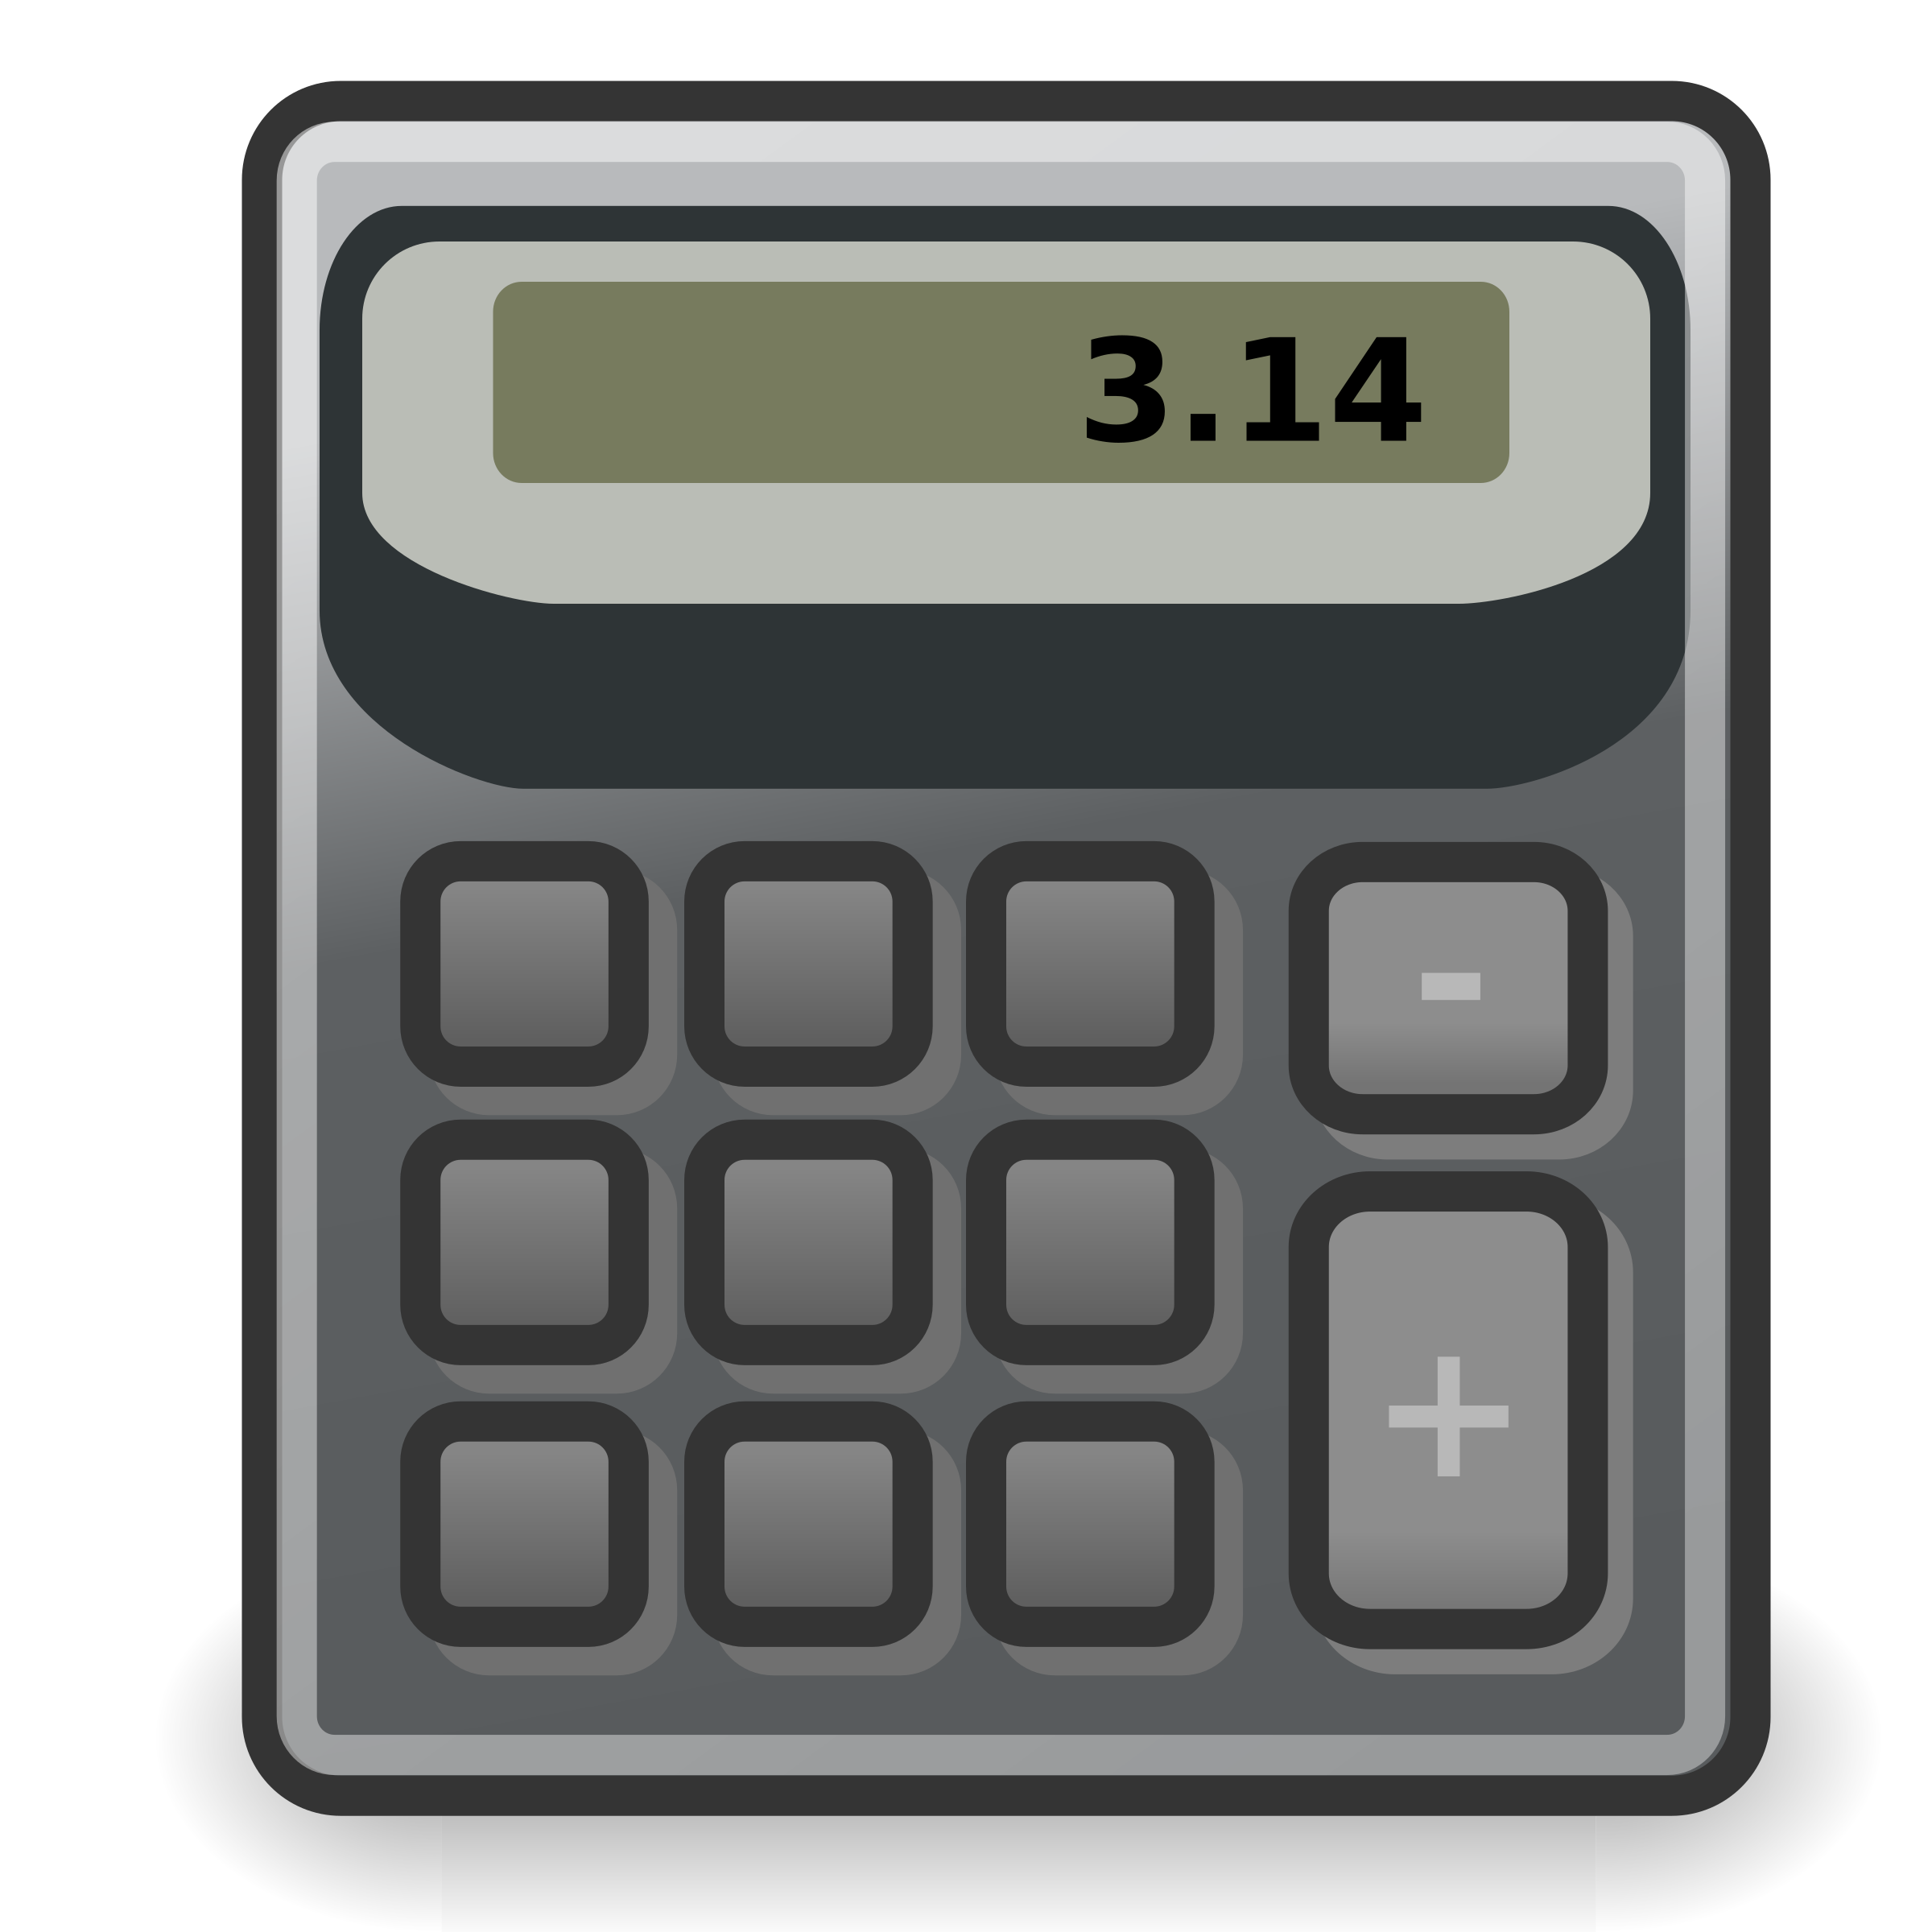 tango accessories calculator by warszawianka